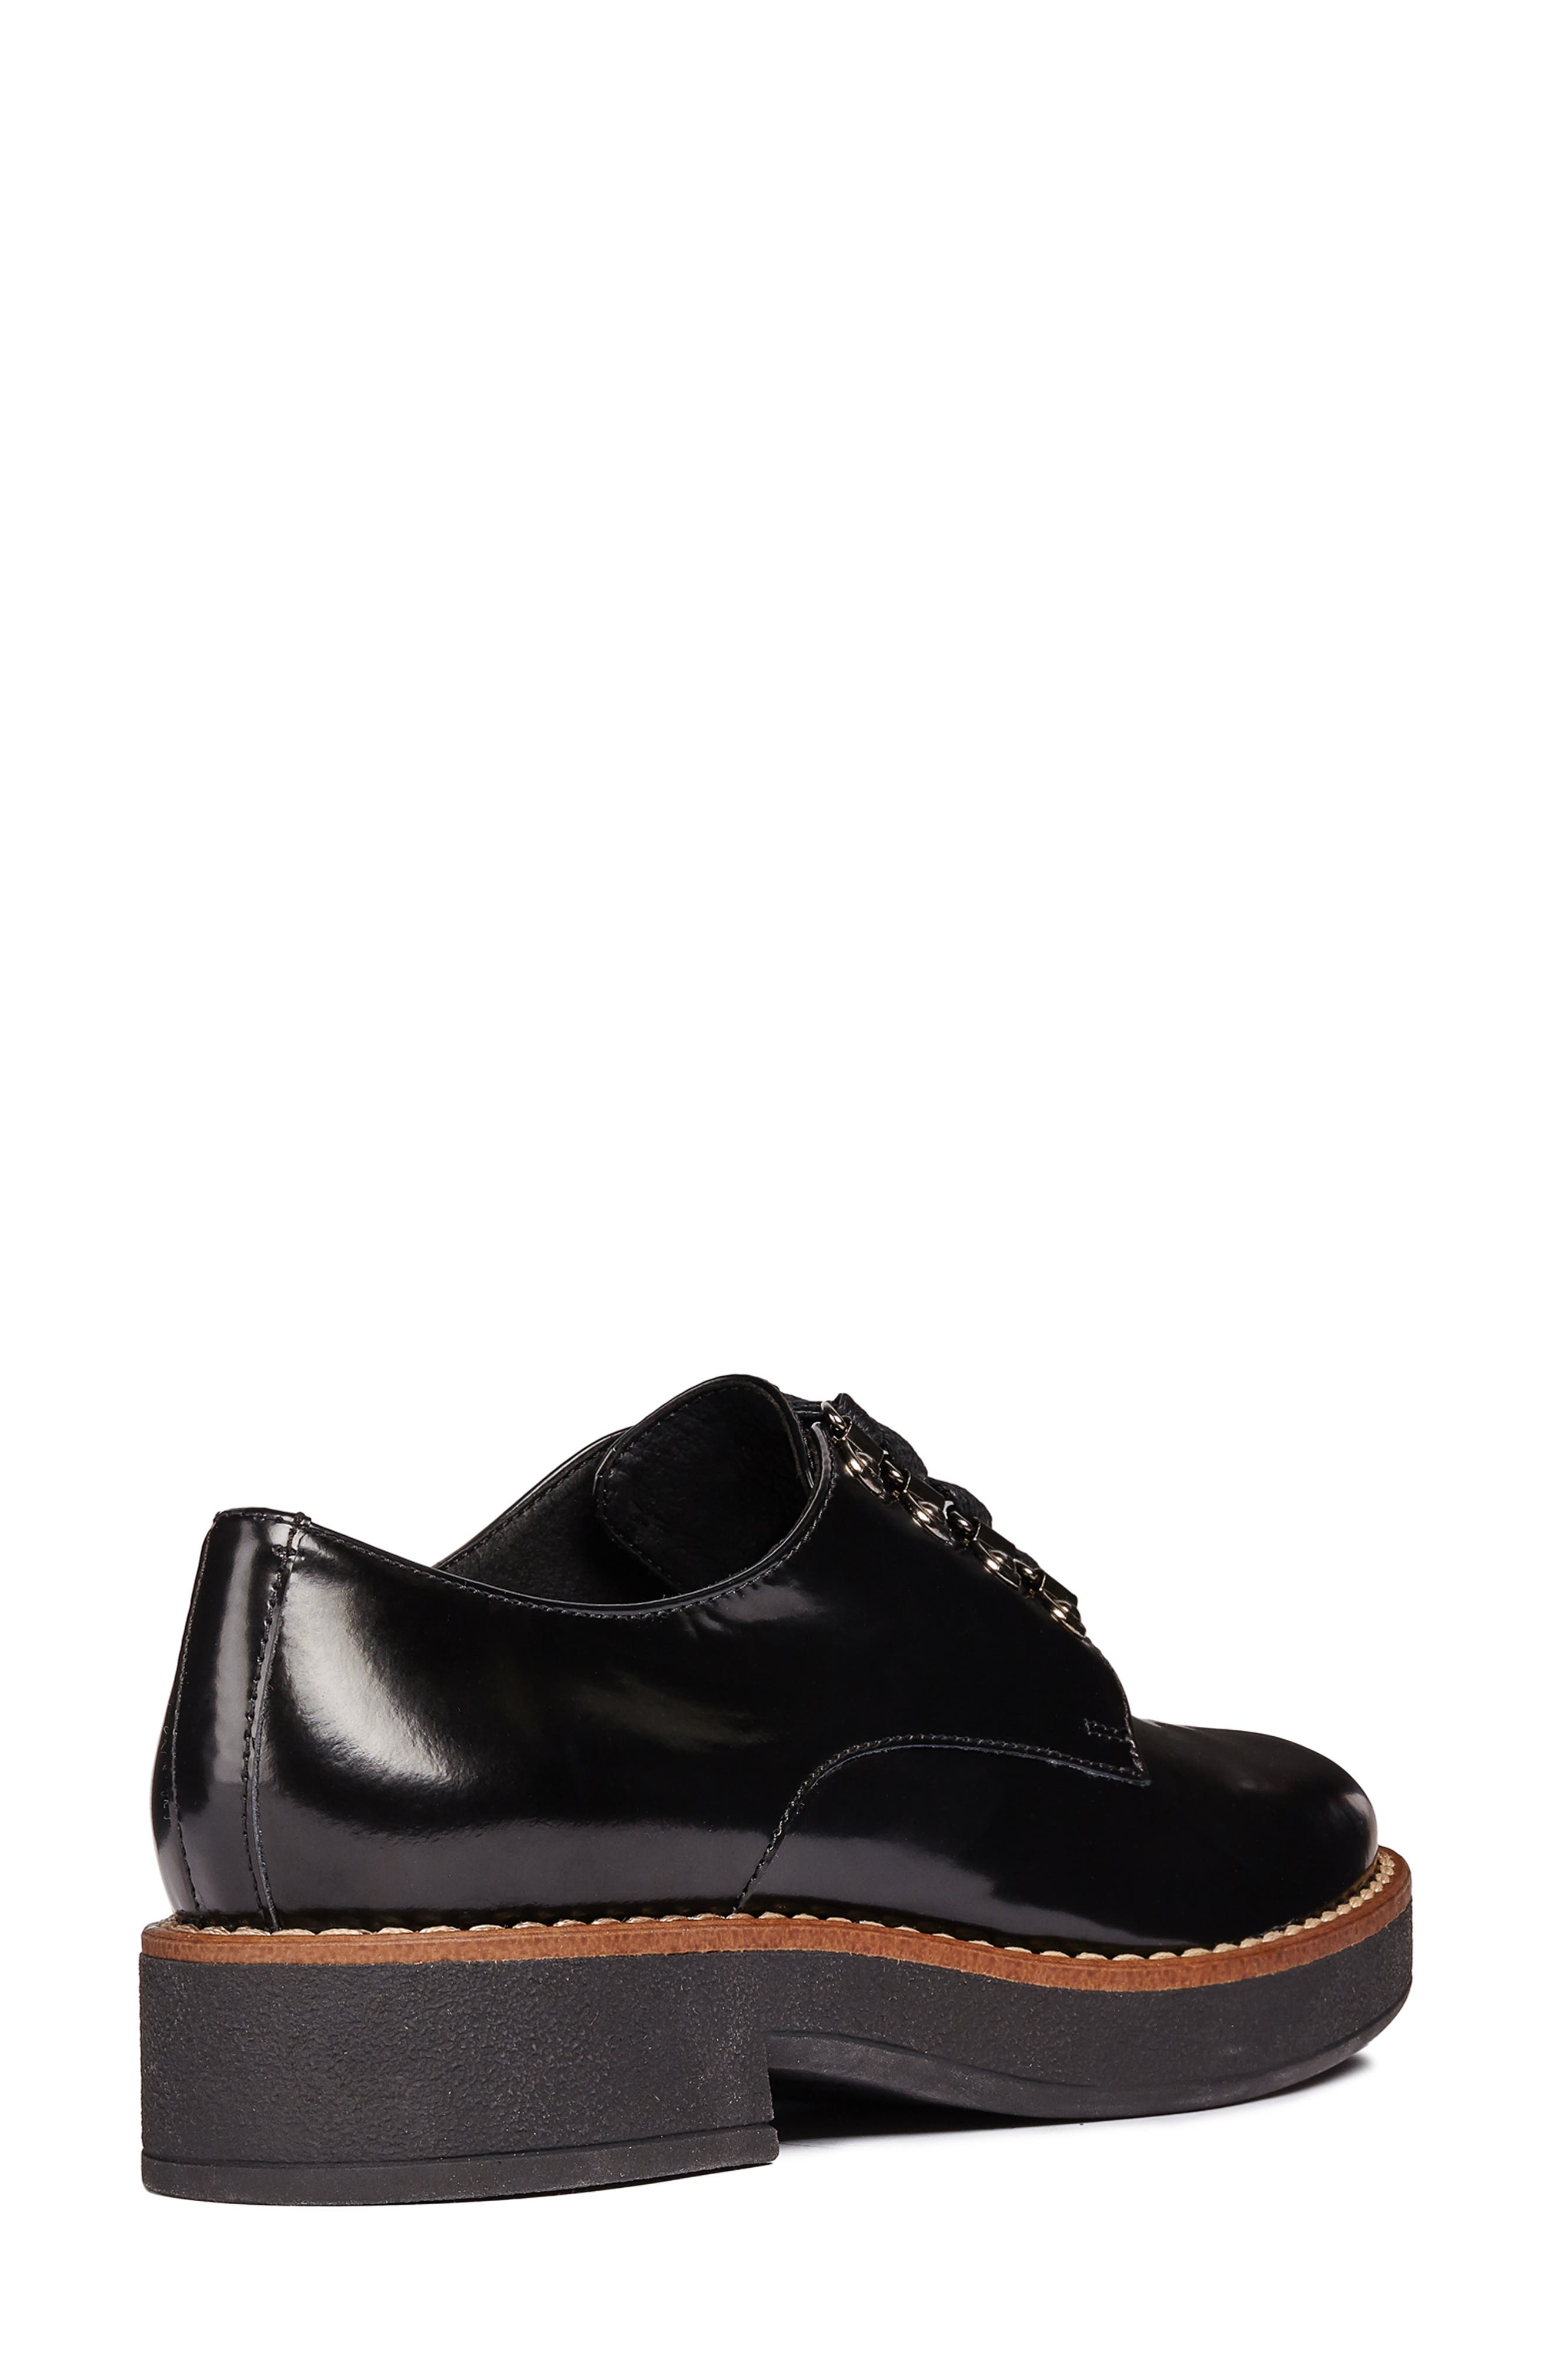 Adrya Oxford,                             Alternate thumbnail 6, color,                             BLACK/ BEIGE LEATHER